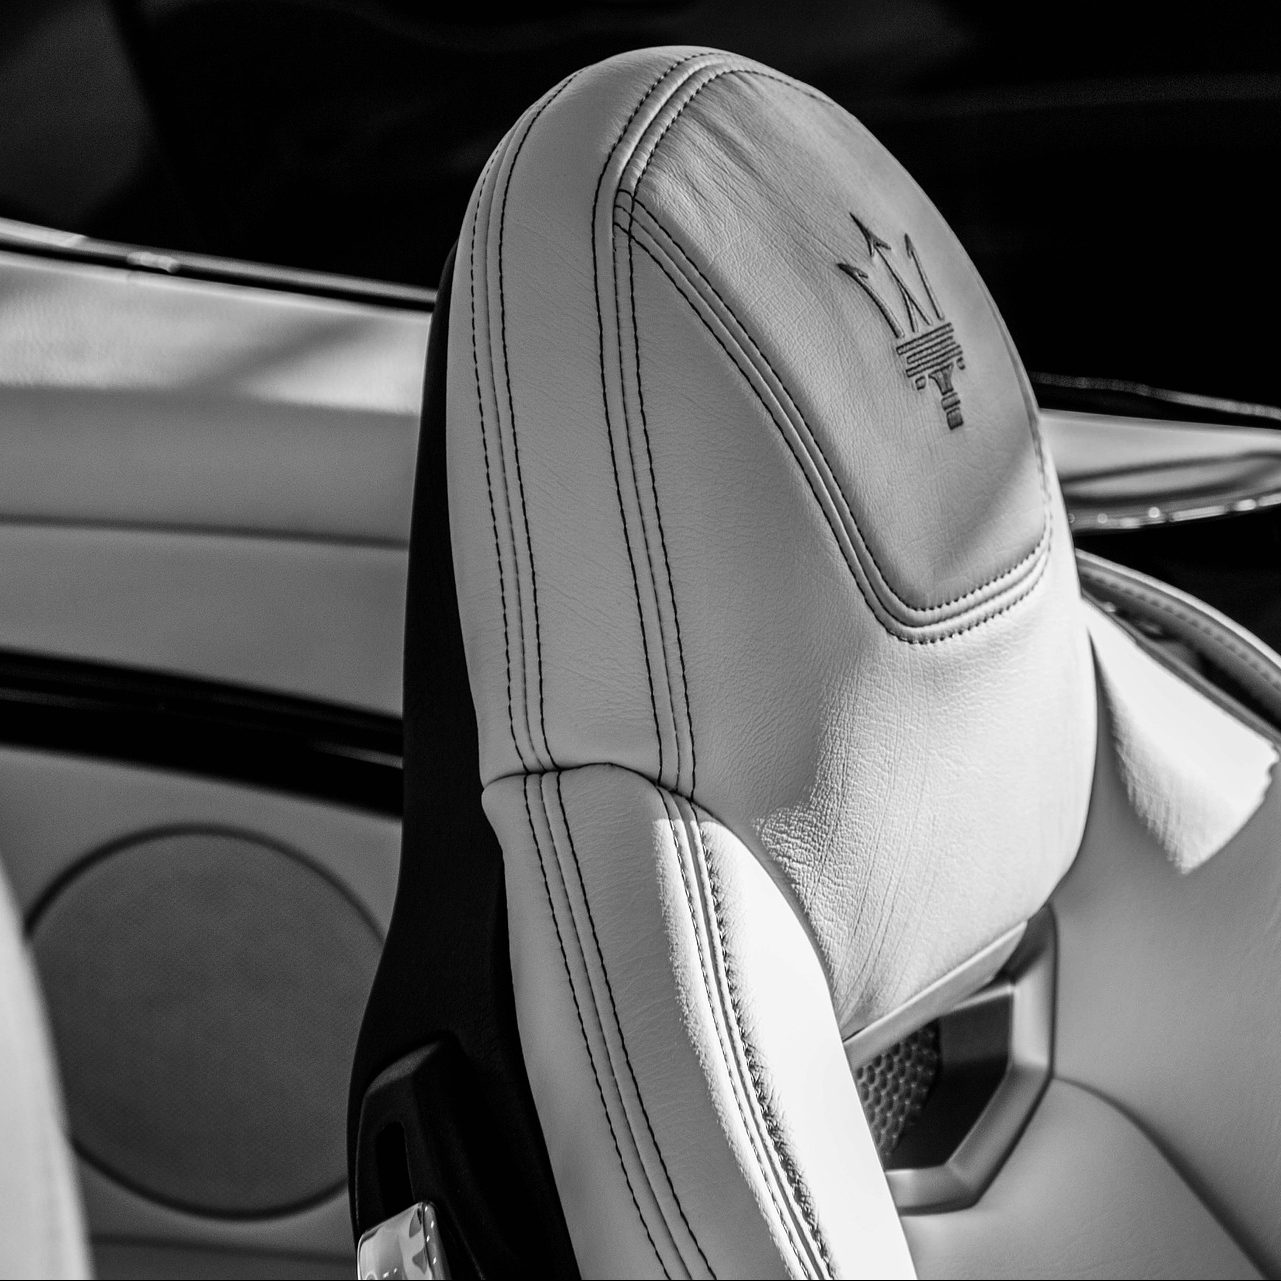 Maserati Granturismo car seat. BlueThink Technology, Engineering, Industrial, Product, Design and Mechanical Consultants and assisting